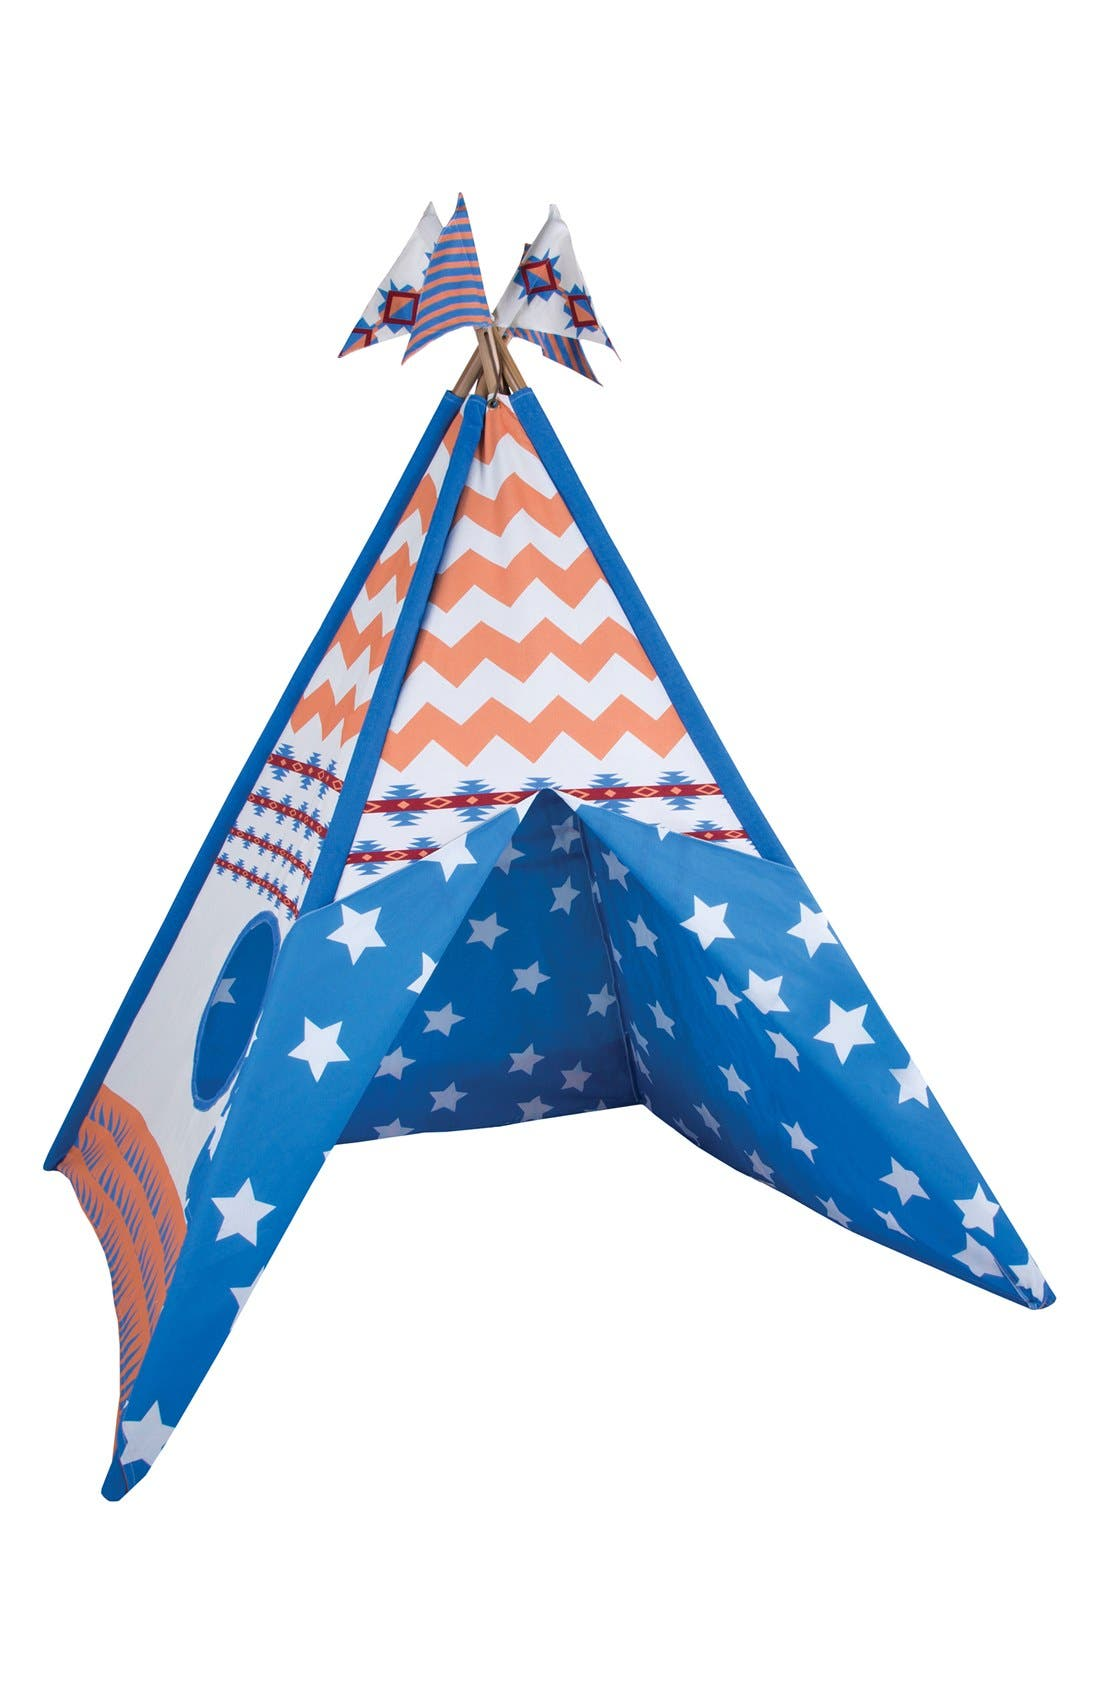 Main Image - Pacific Play Tents 'Vintage' Cotton Canvas Teepee